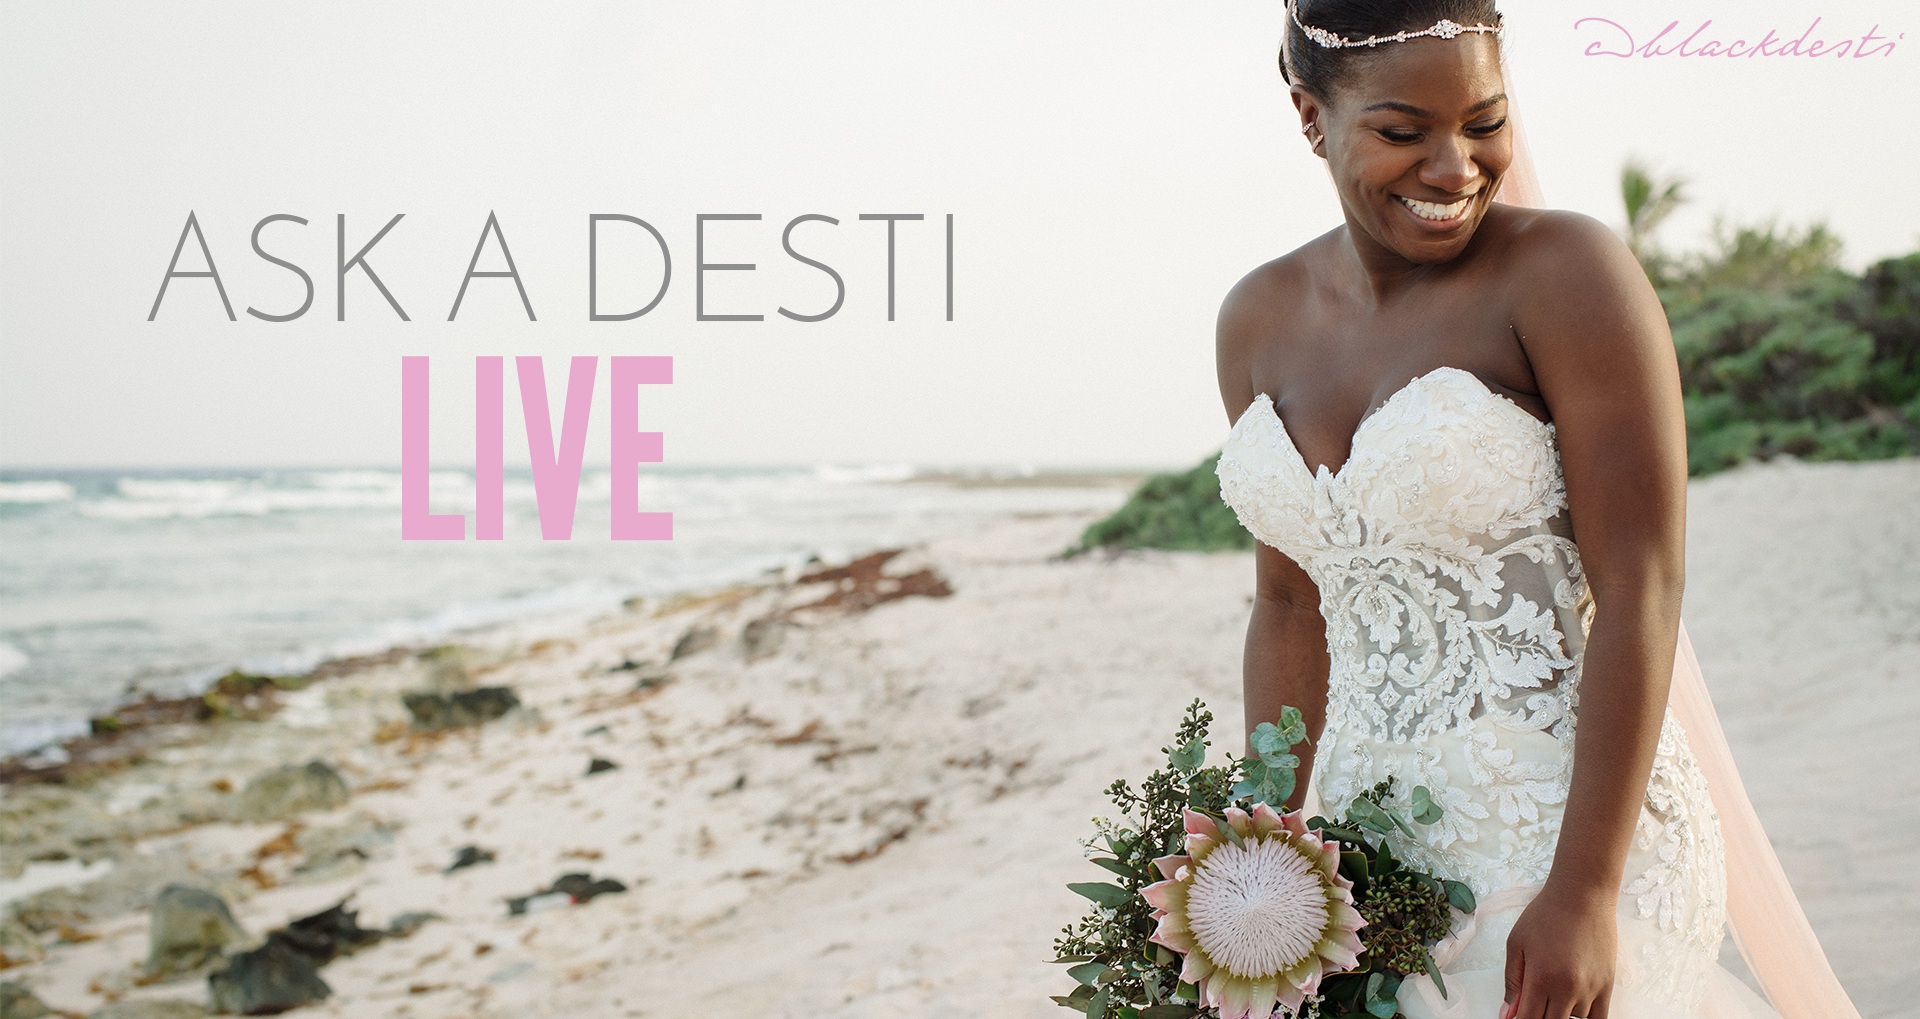 SUBMIT your question here and JOIN ME and my Bridefriends on AskADesti Live!  It's a Live session where I tackle a different topic and answer all of your questions!